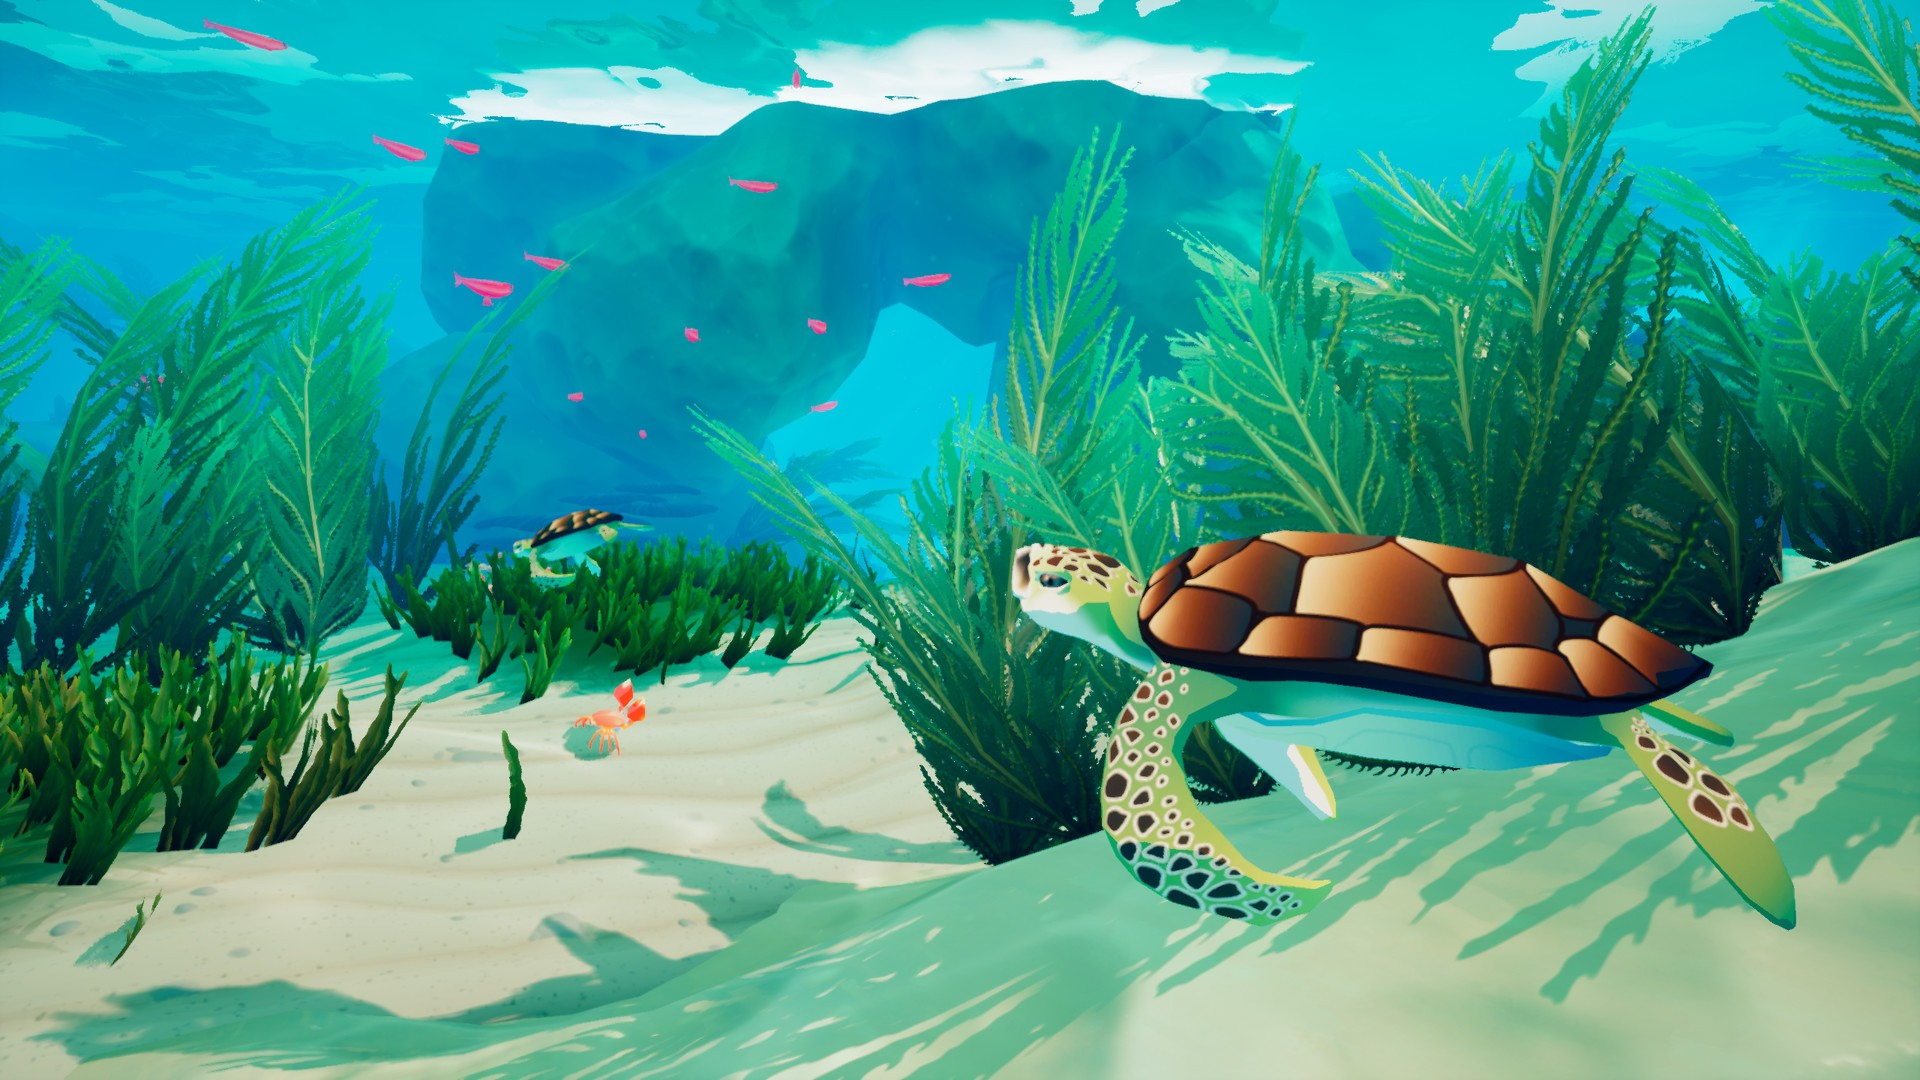 adventure, Choices Matter, indie, Mythic Ocean, Mythic Ocean Review, Paralune LLC, PC, PC Review, Rating 8/10, Underwater